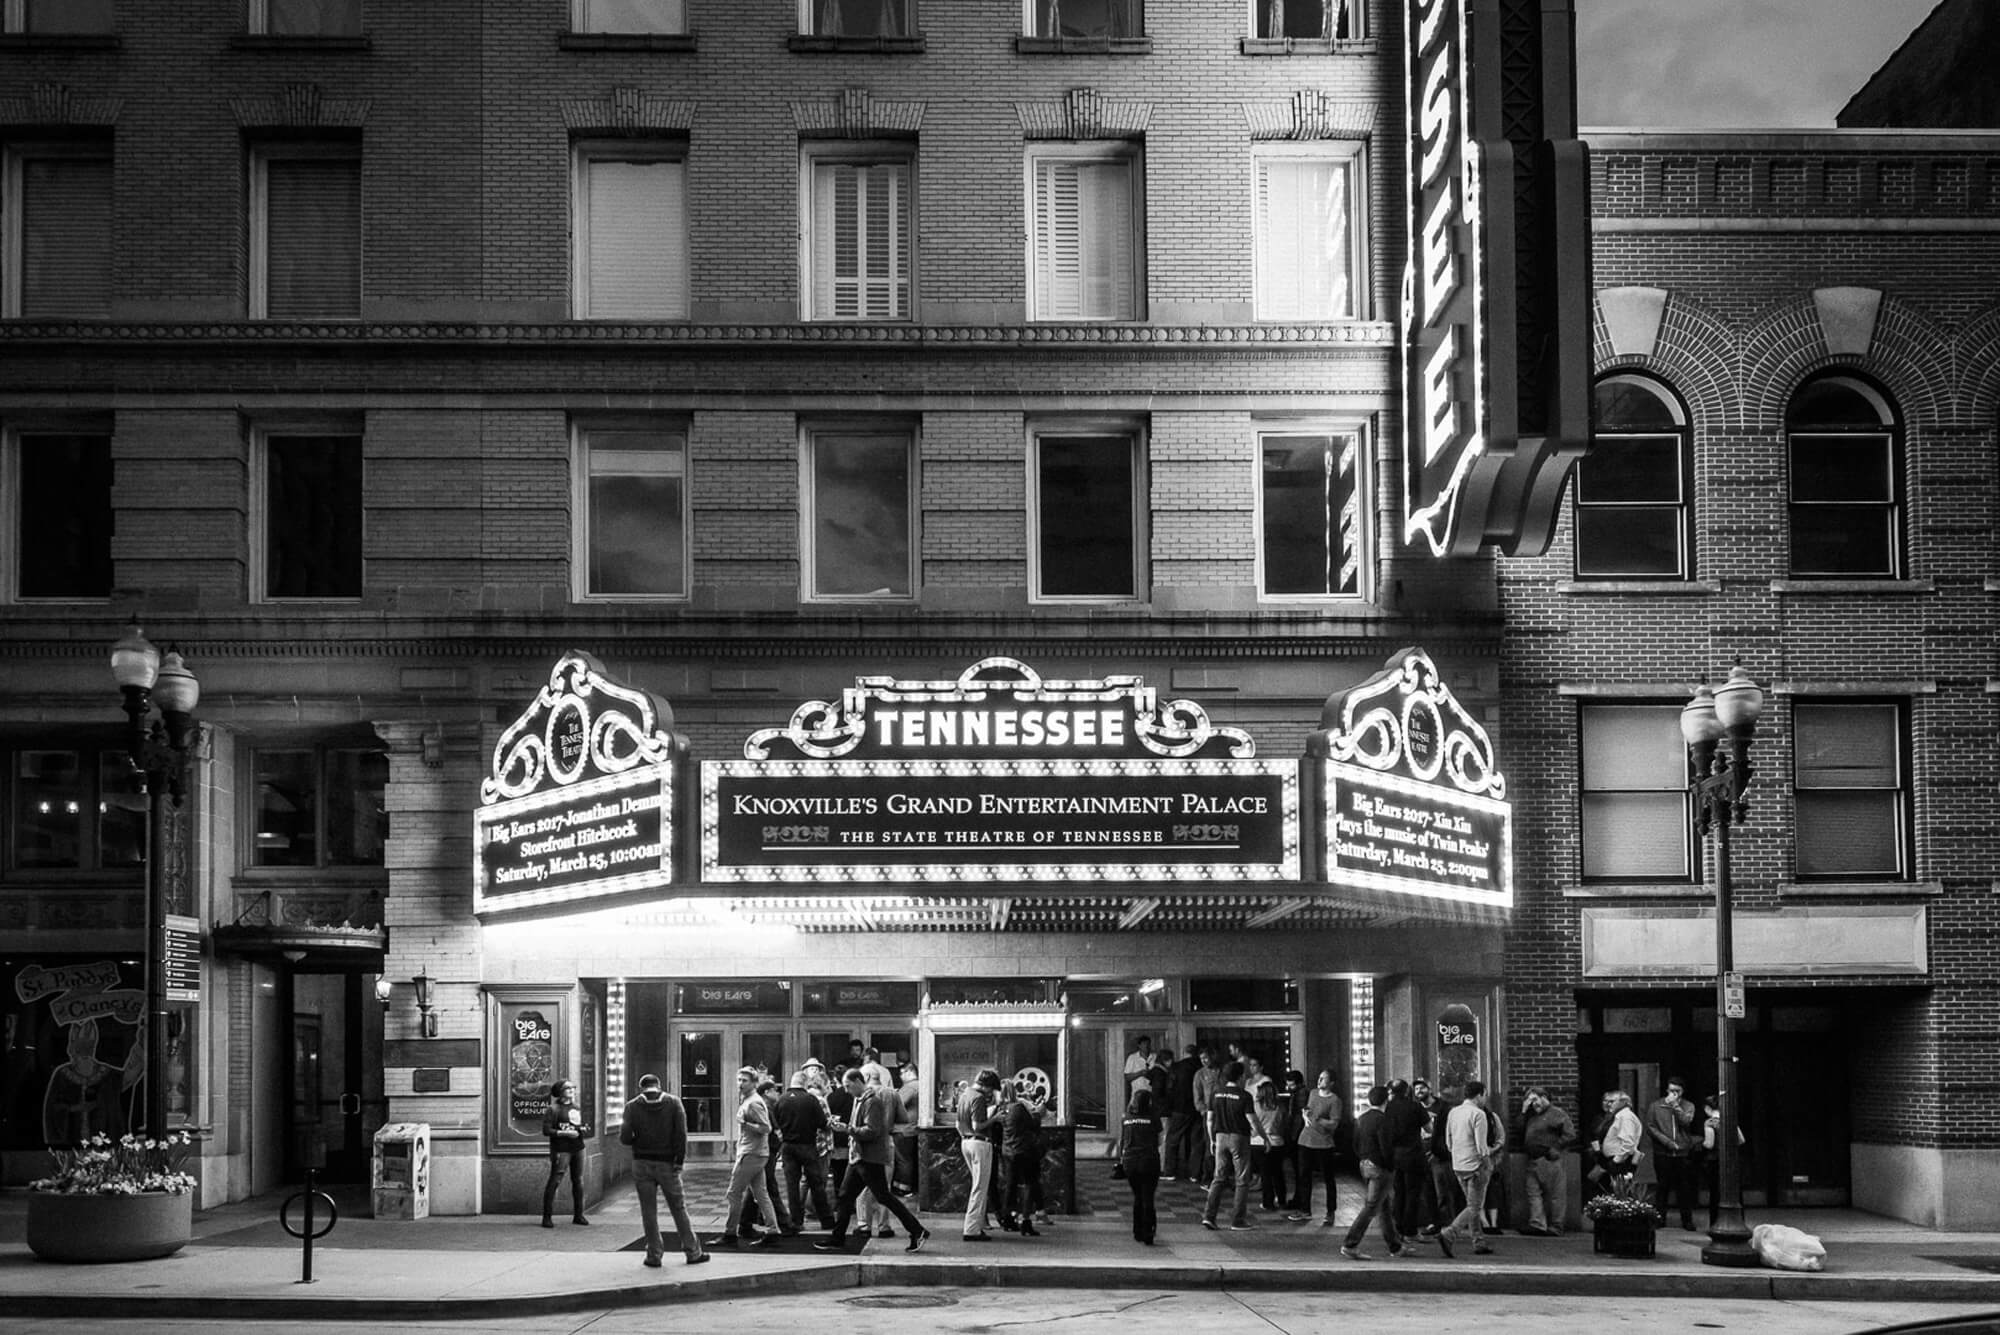 """The Tennessee theatre is a """"Grand Entertainment Palace"""" and has been for almost 100 years. Photo by David Simchock"""